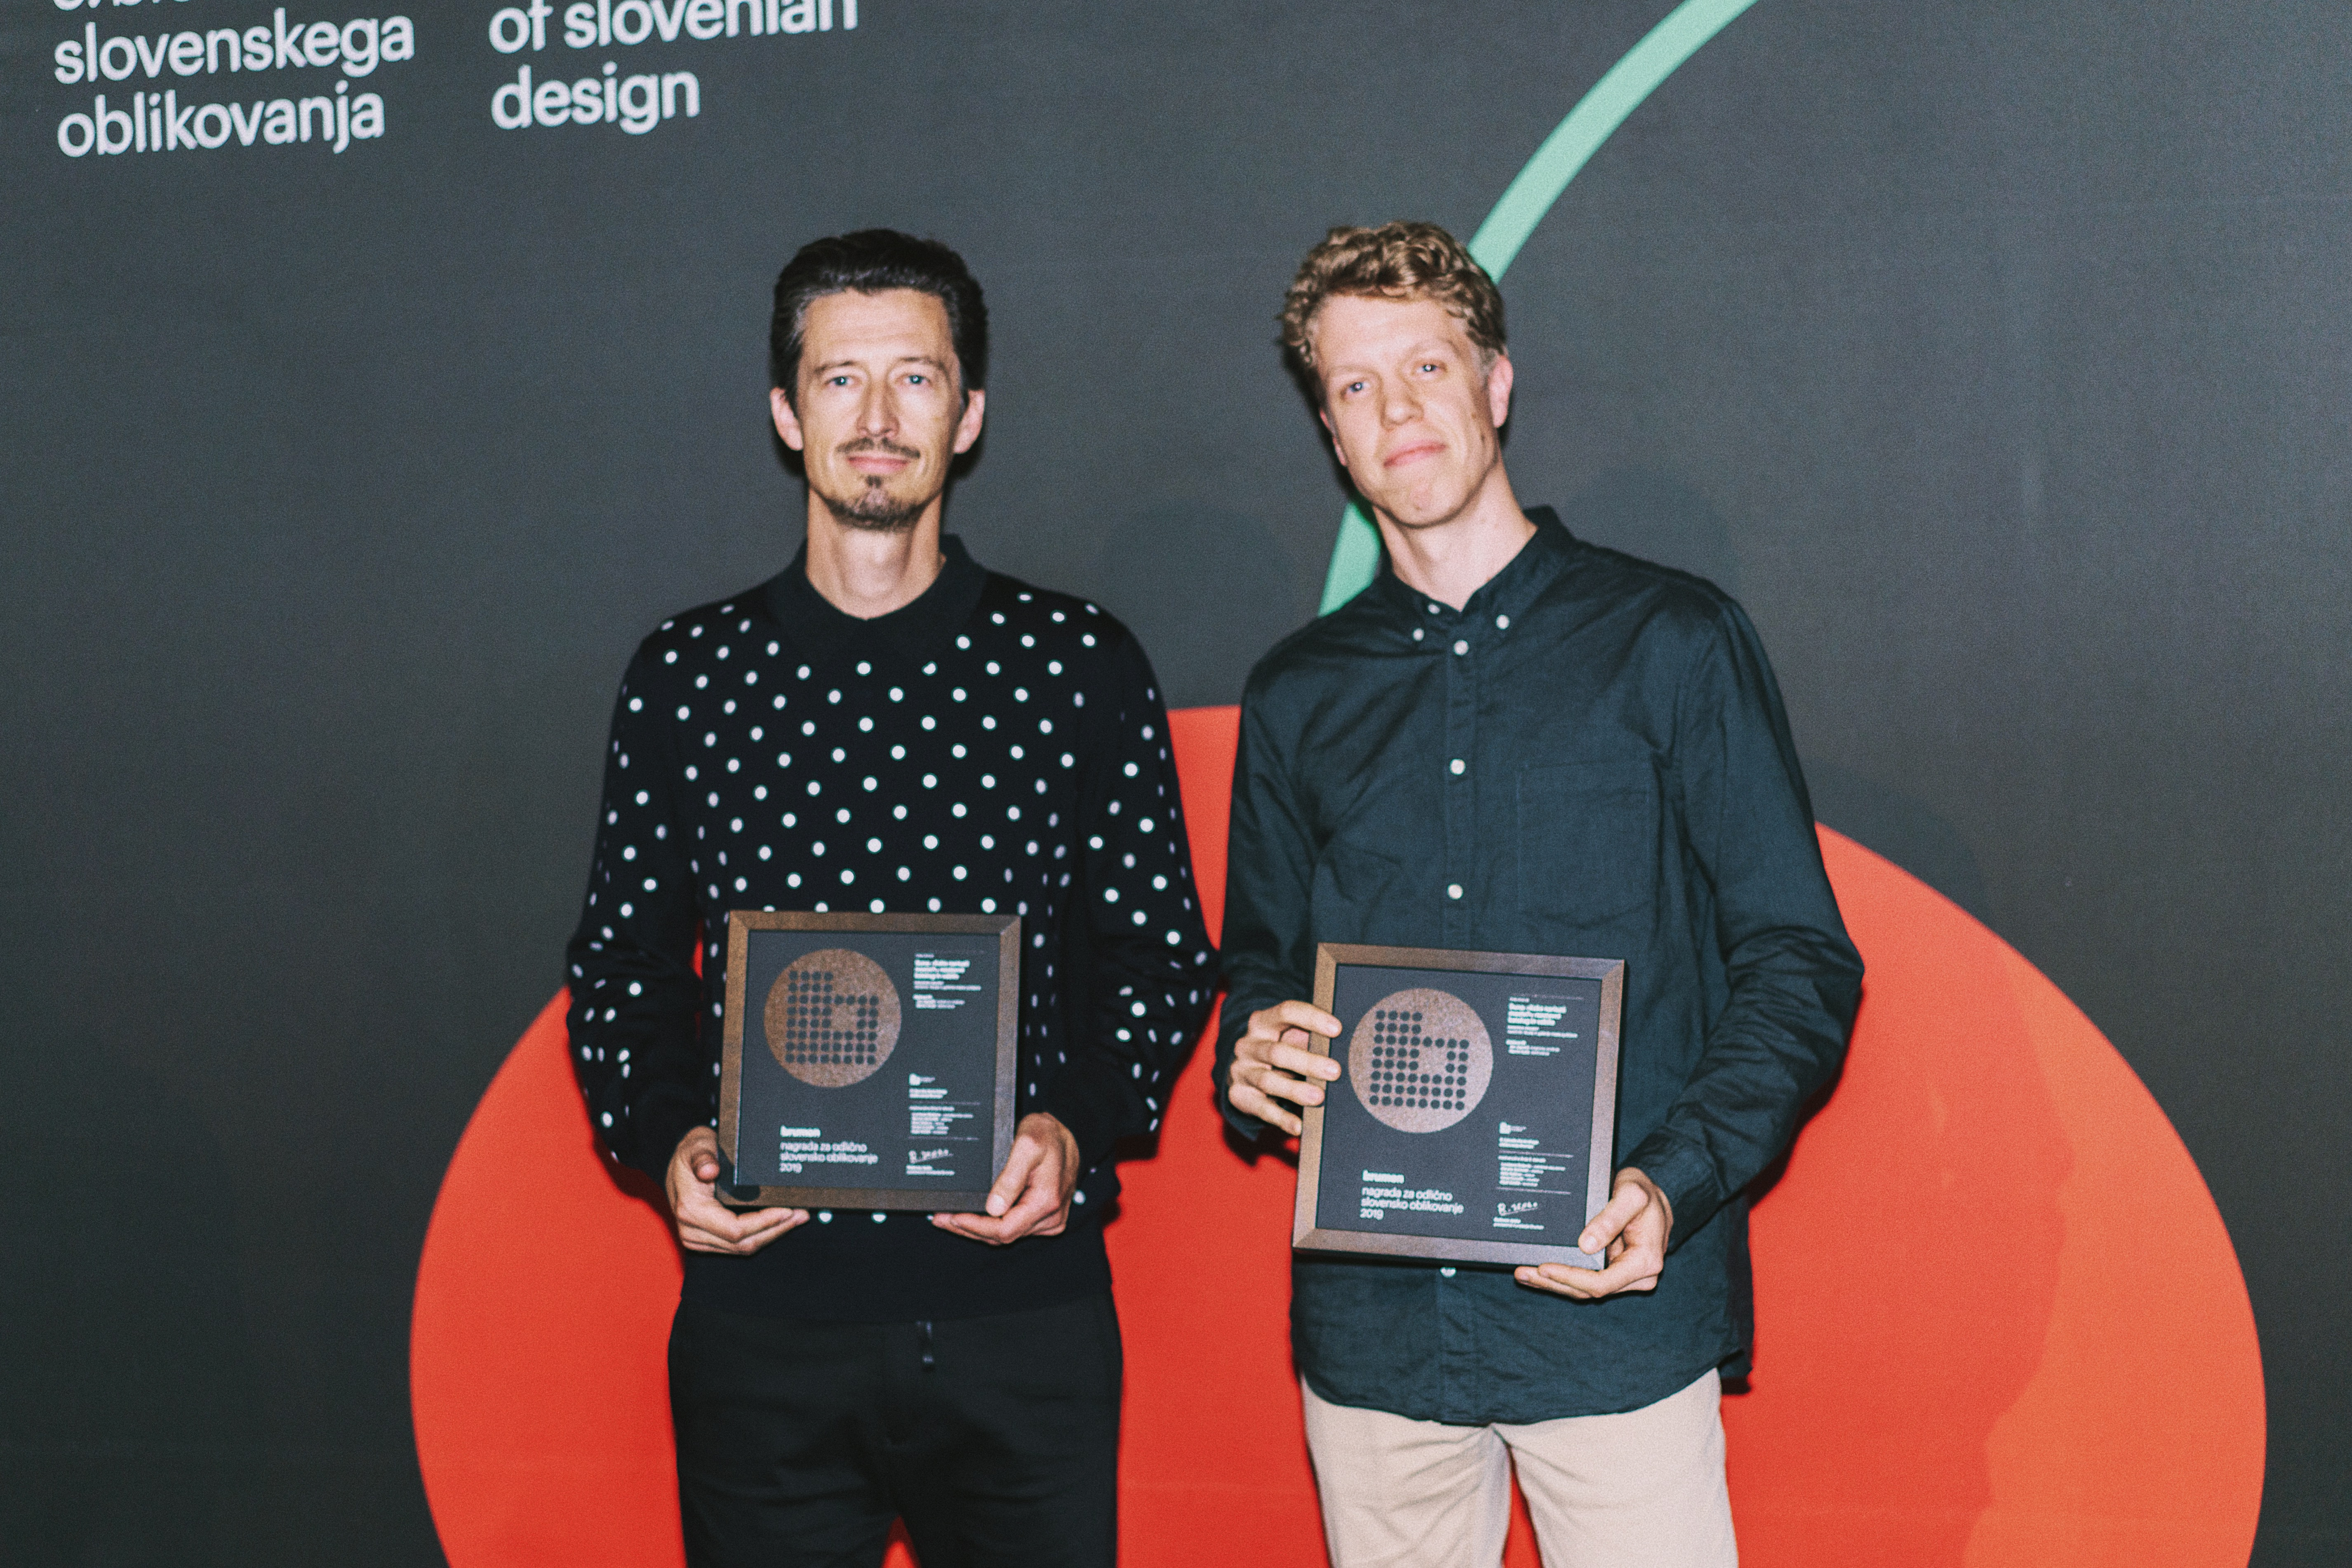 The Kabinet 01 designer duo: Jan Jagodič and Martin Košir with the Brumen Award